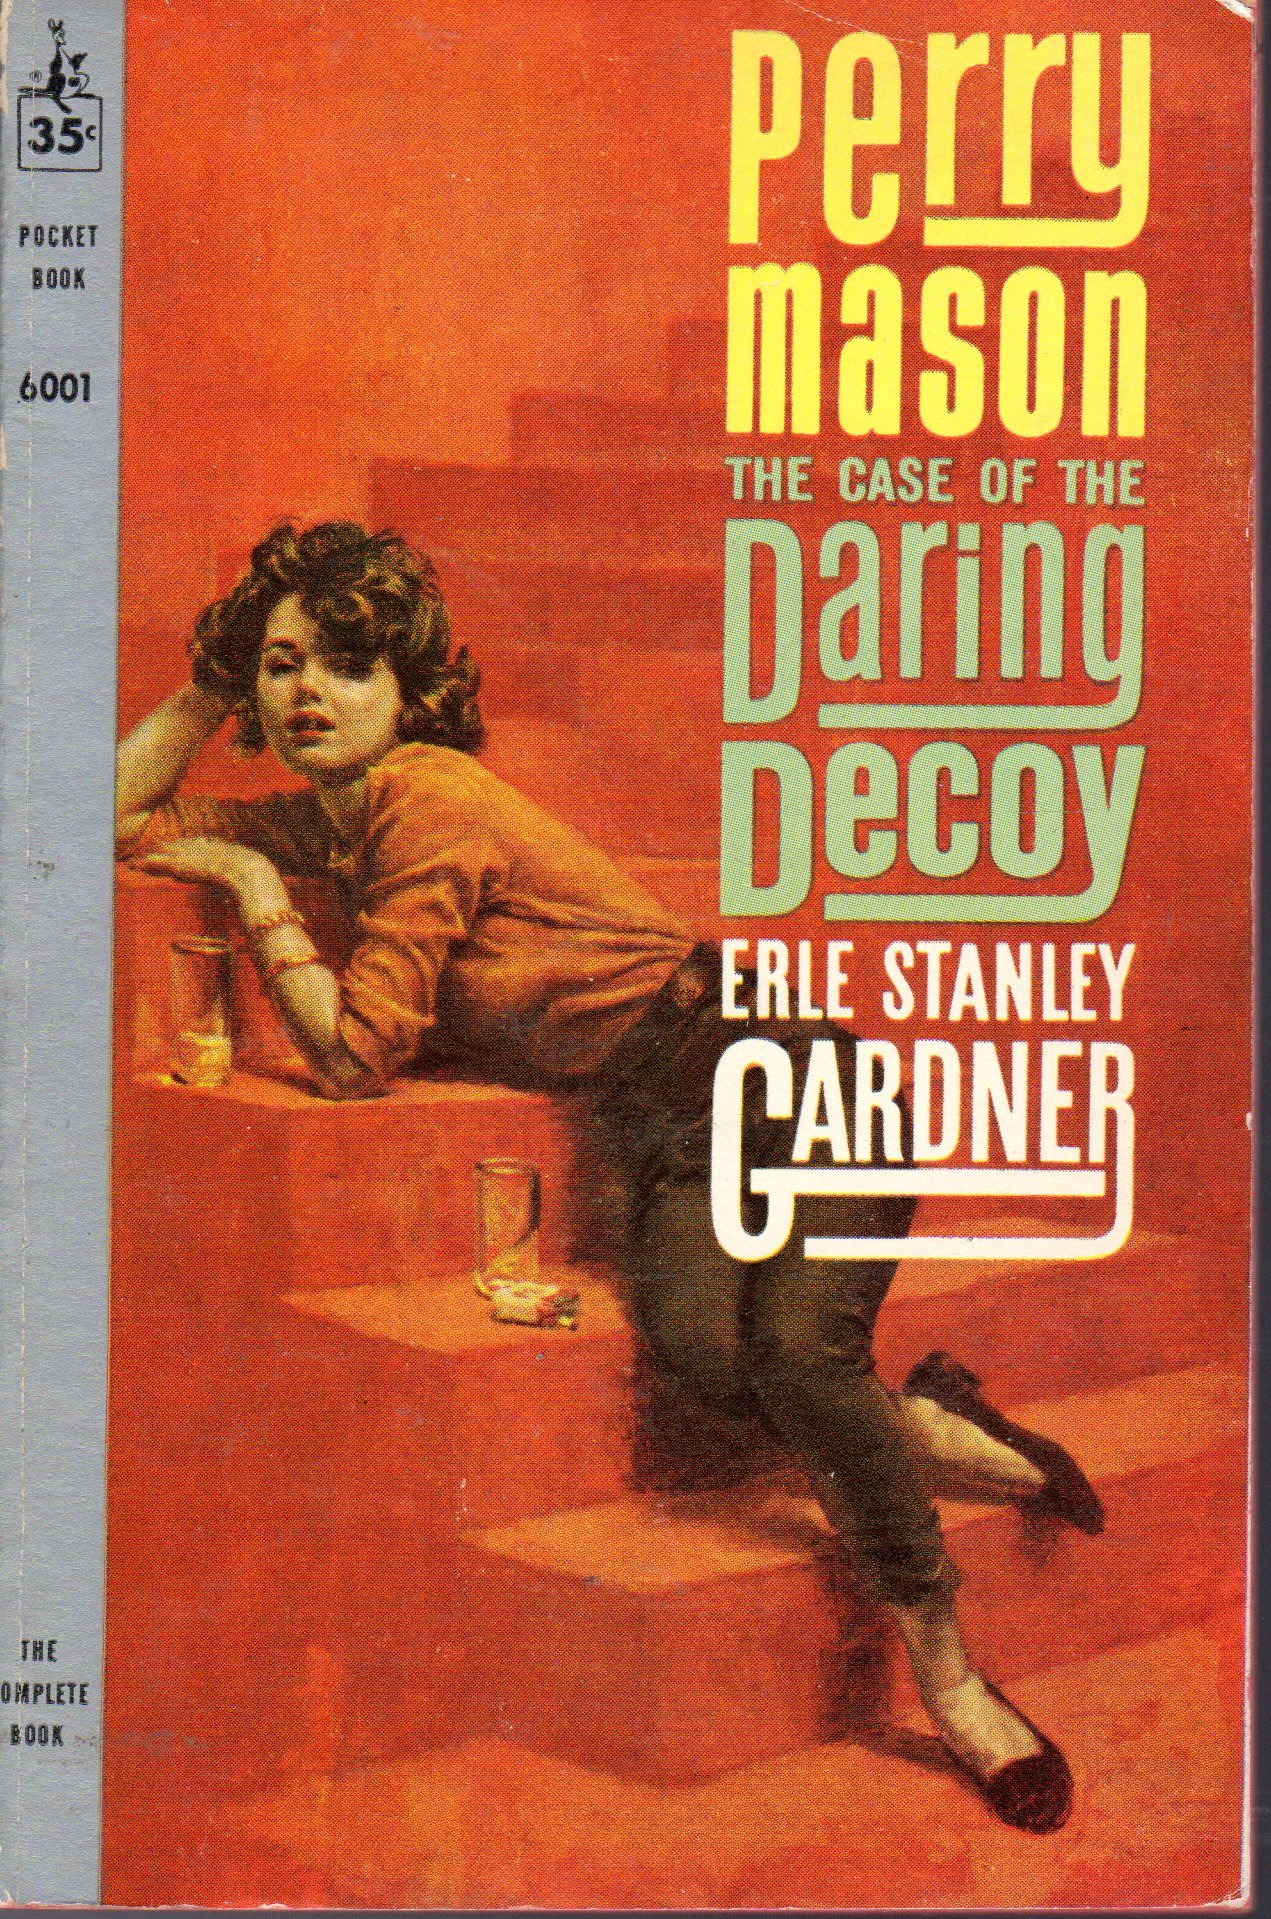 The Case of the Daring Decoy:  A Perry Mason Mystery, Erle Stanley Gardner